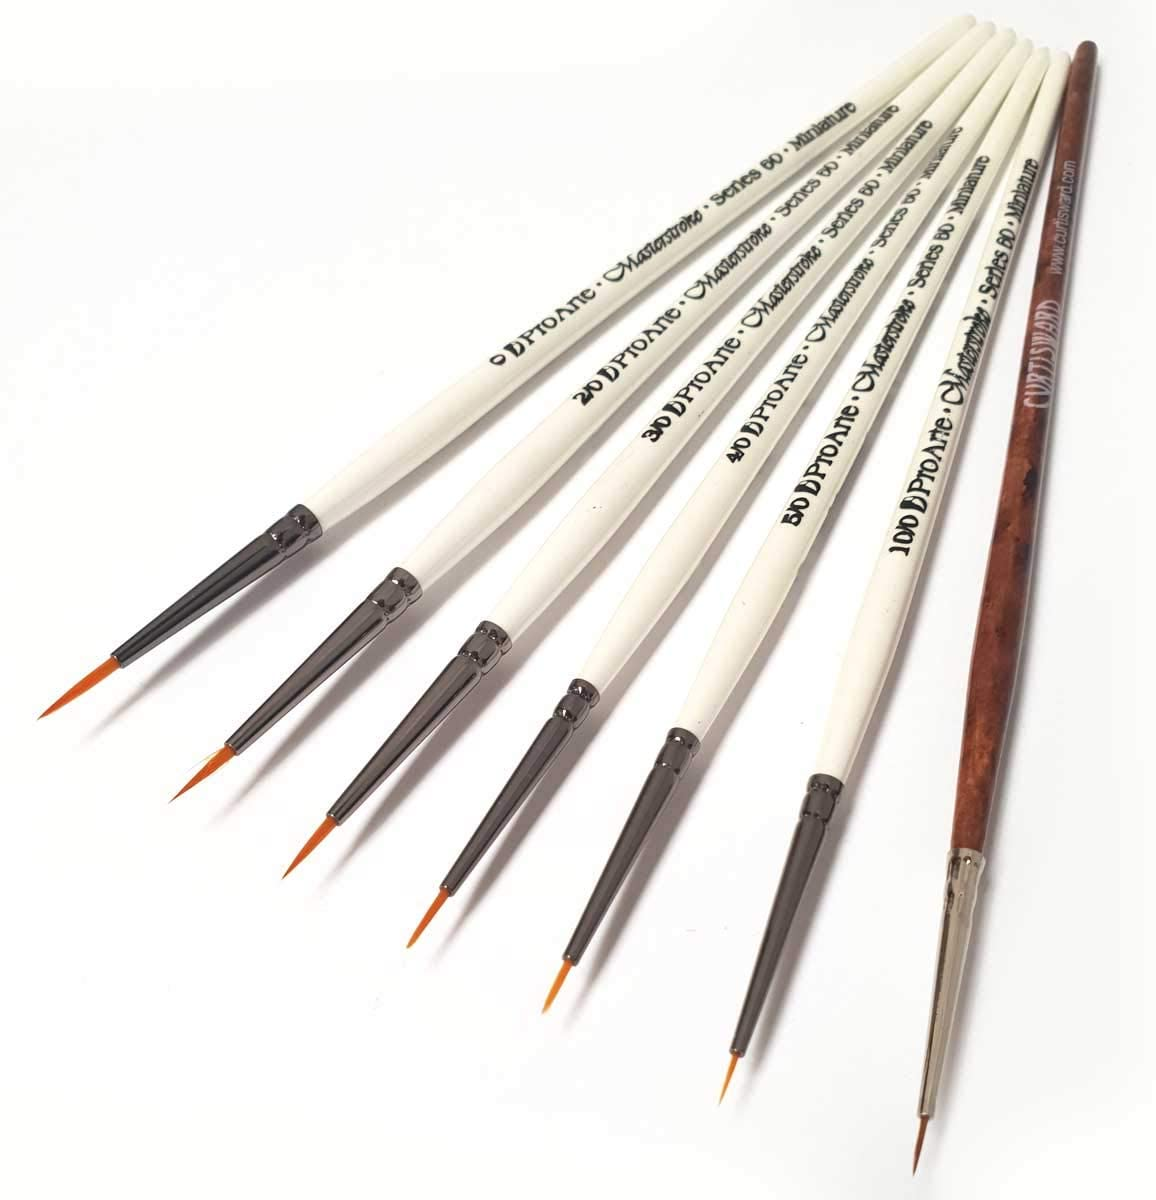 Pro Arte Fine Detail Paint Brushes for Painting Miniatures Size 10//0.